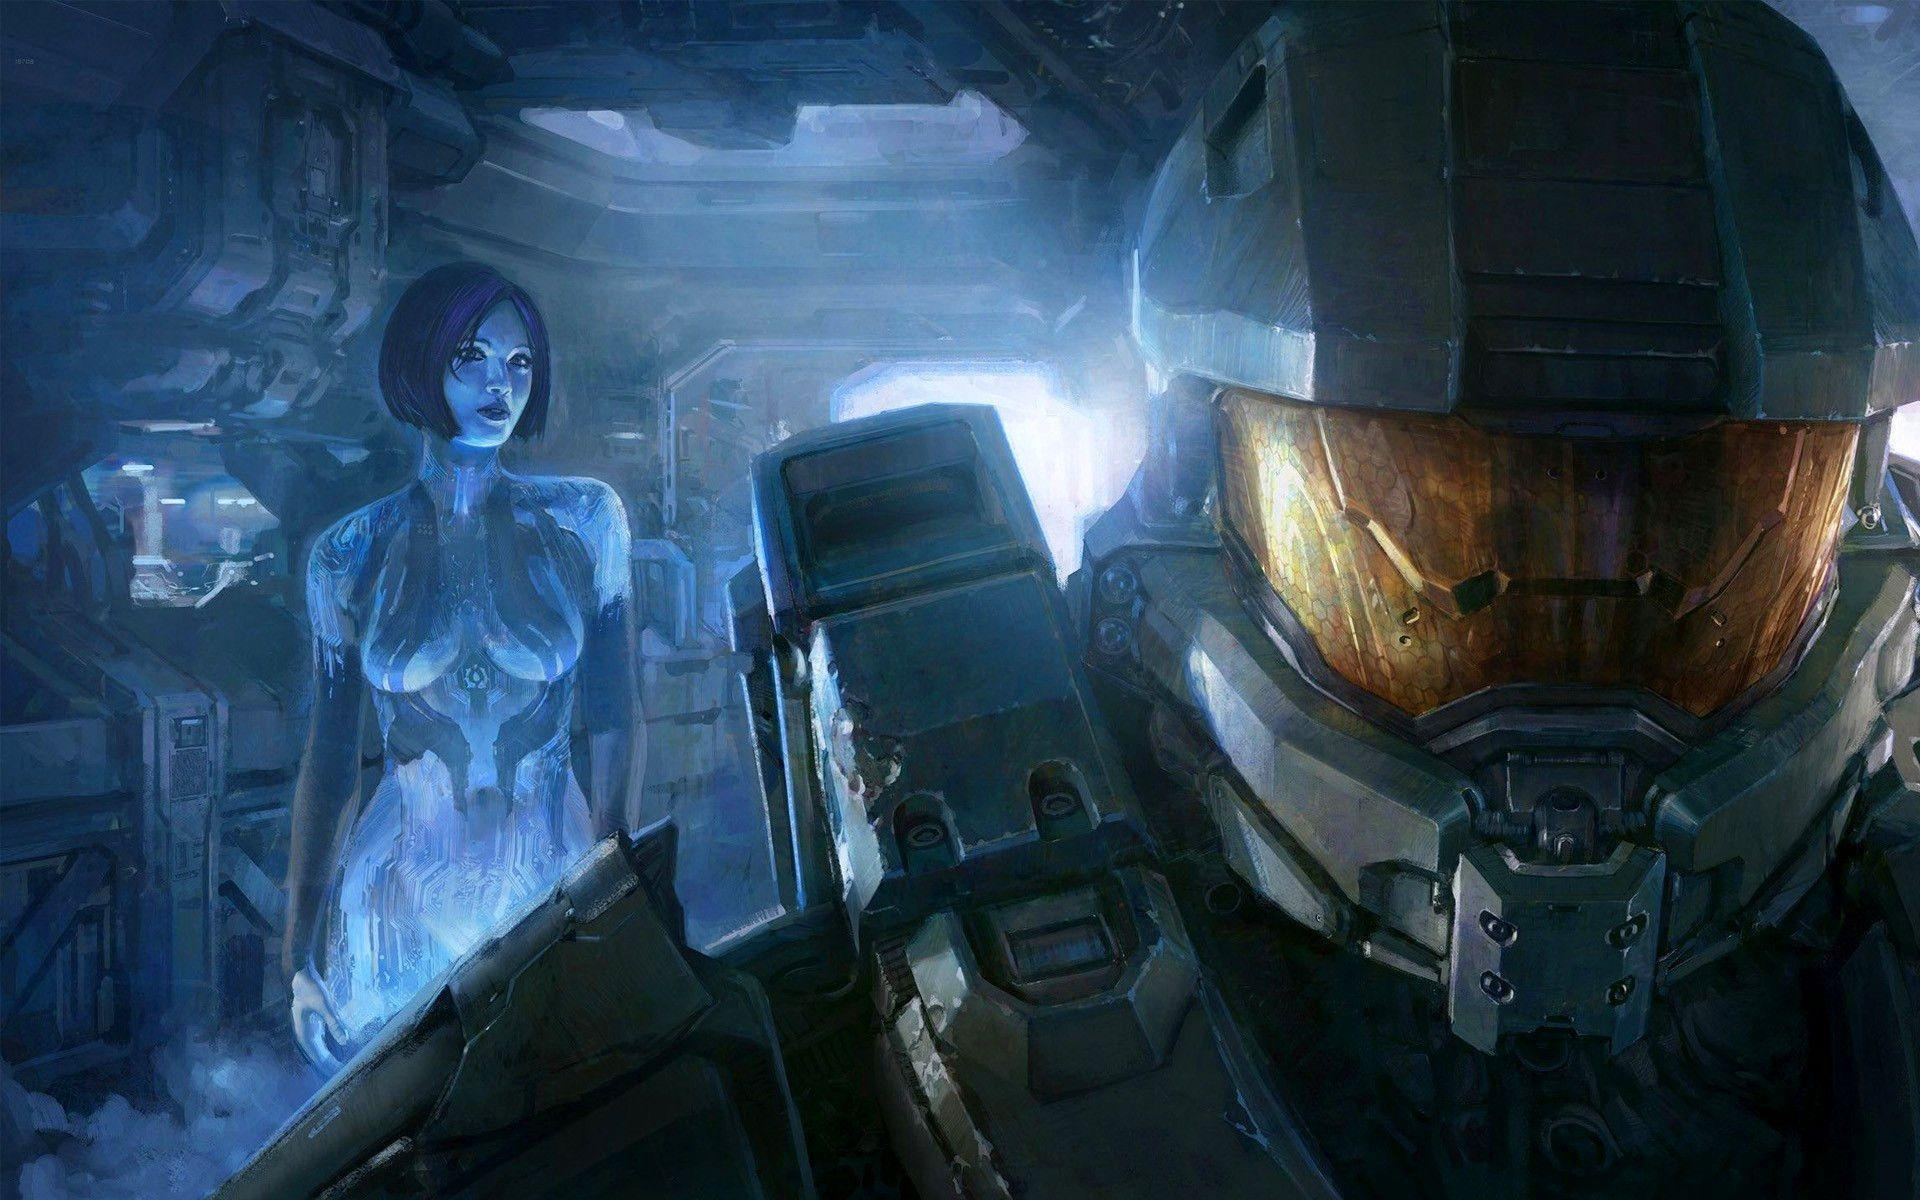 Halo 4 master chief wallpapers wallpaper cave images for halo 4 master chief wallpaper voltagebd Image collections